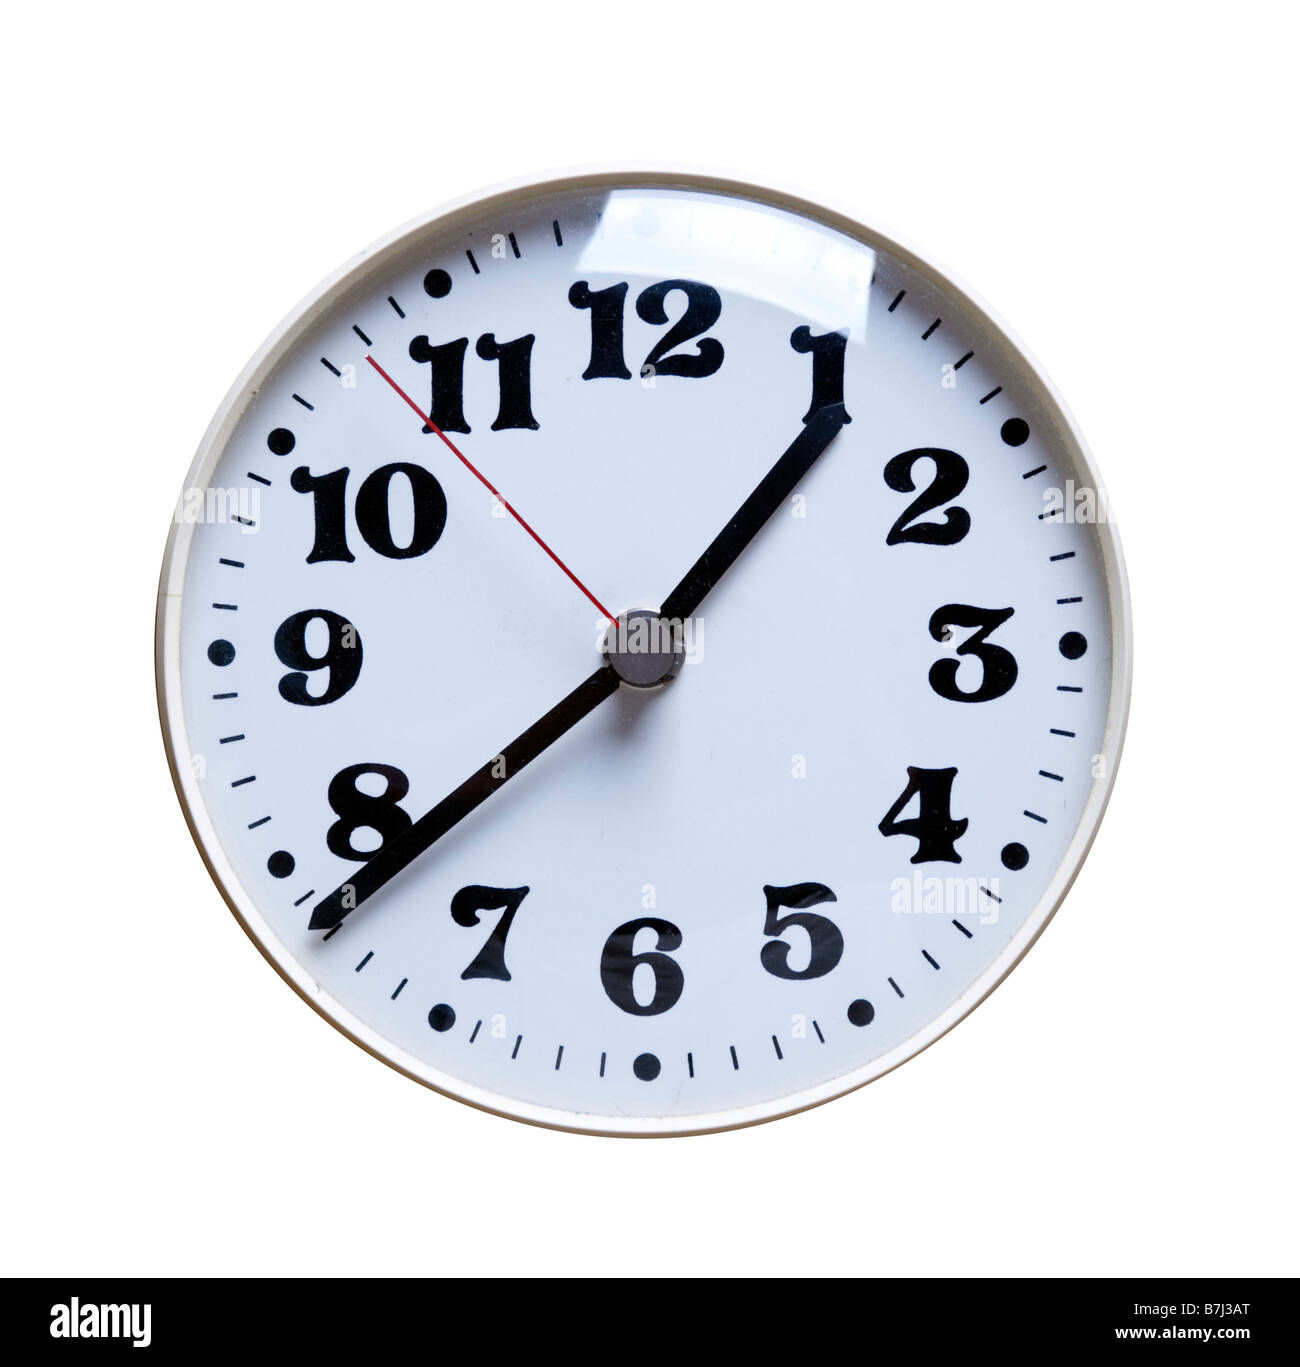 Wall clock on isolated white background - Stock Image